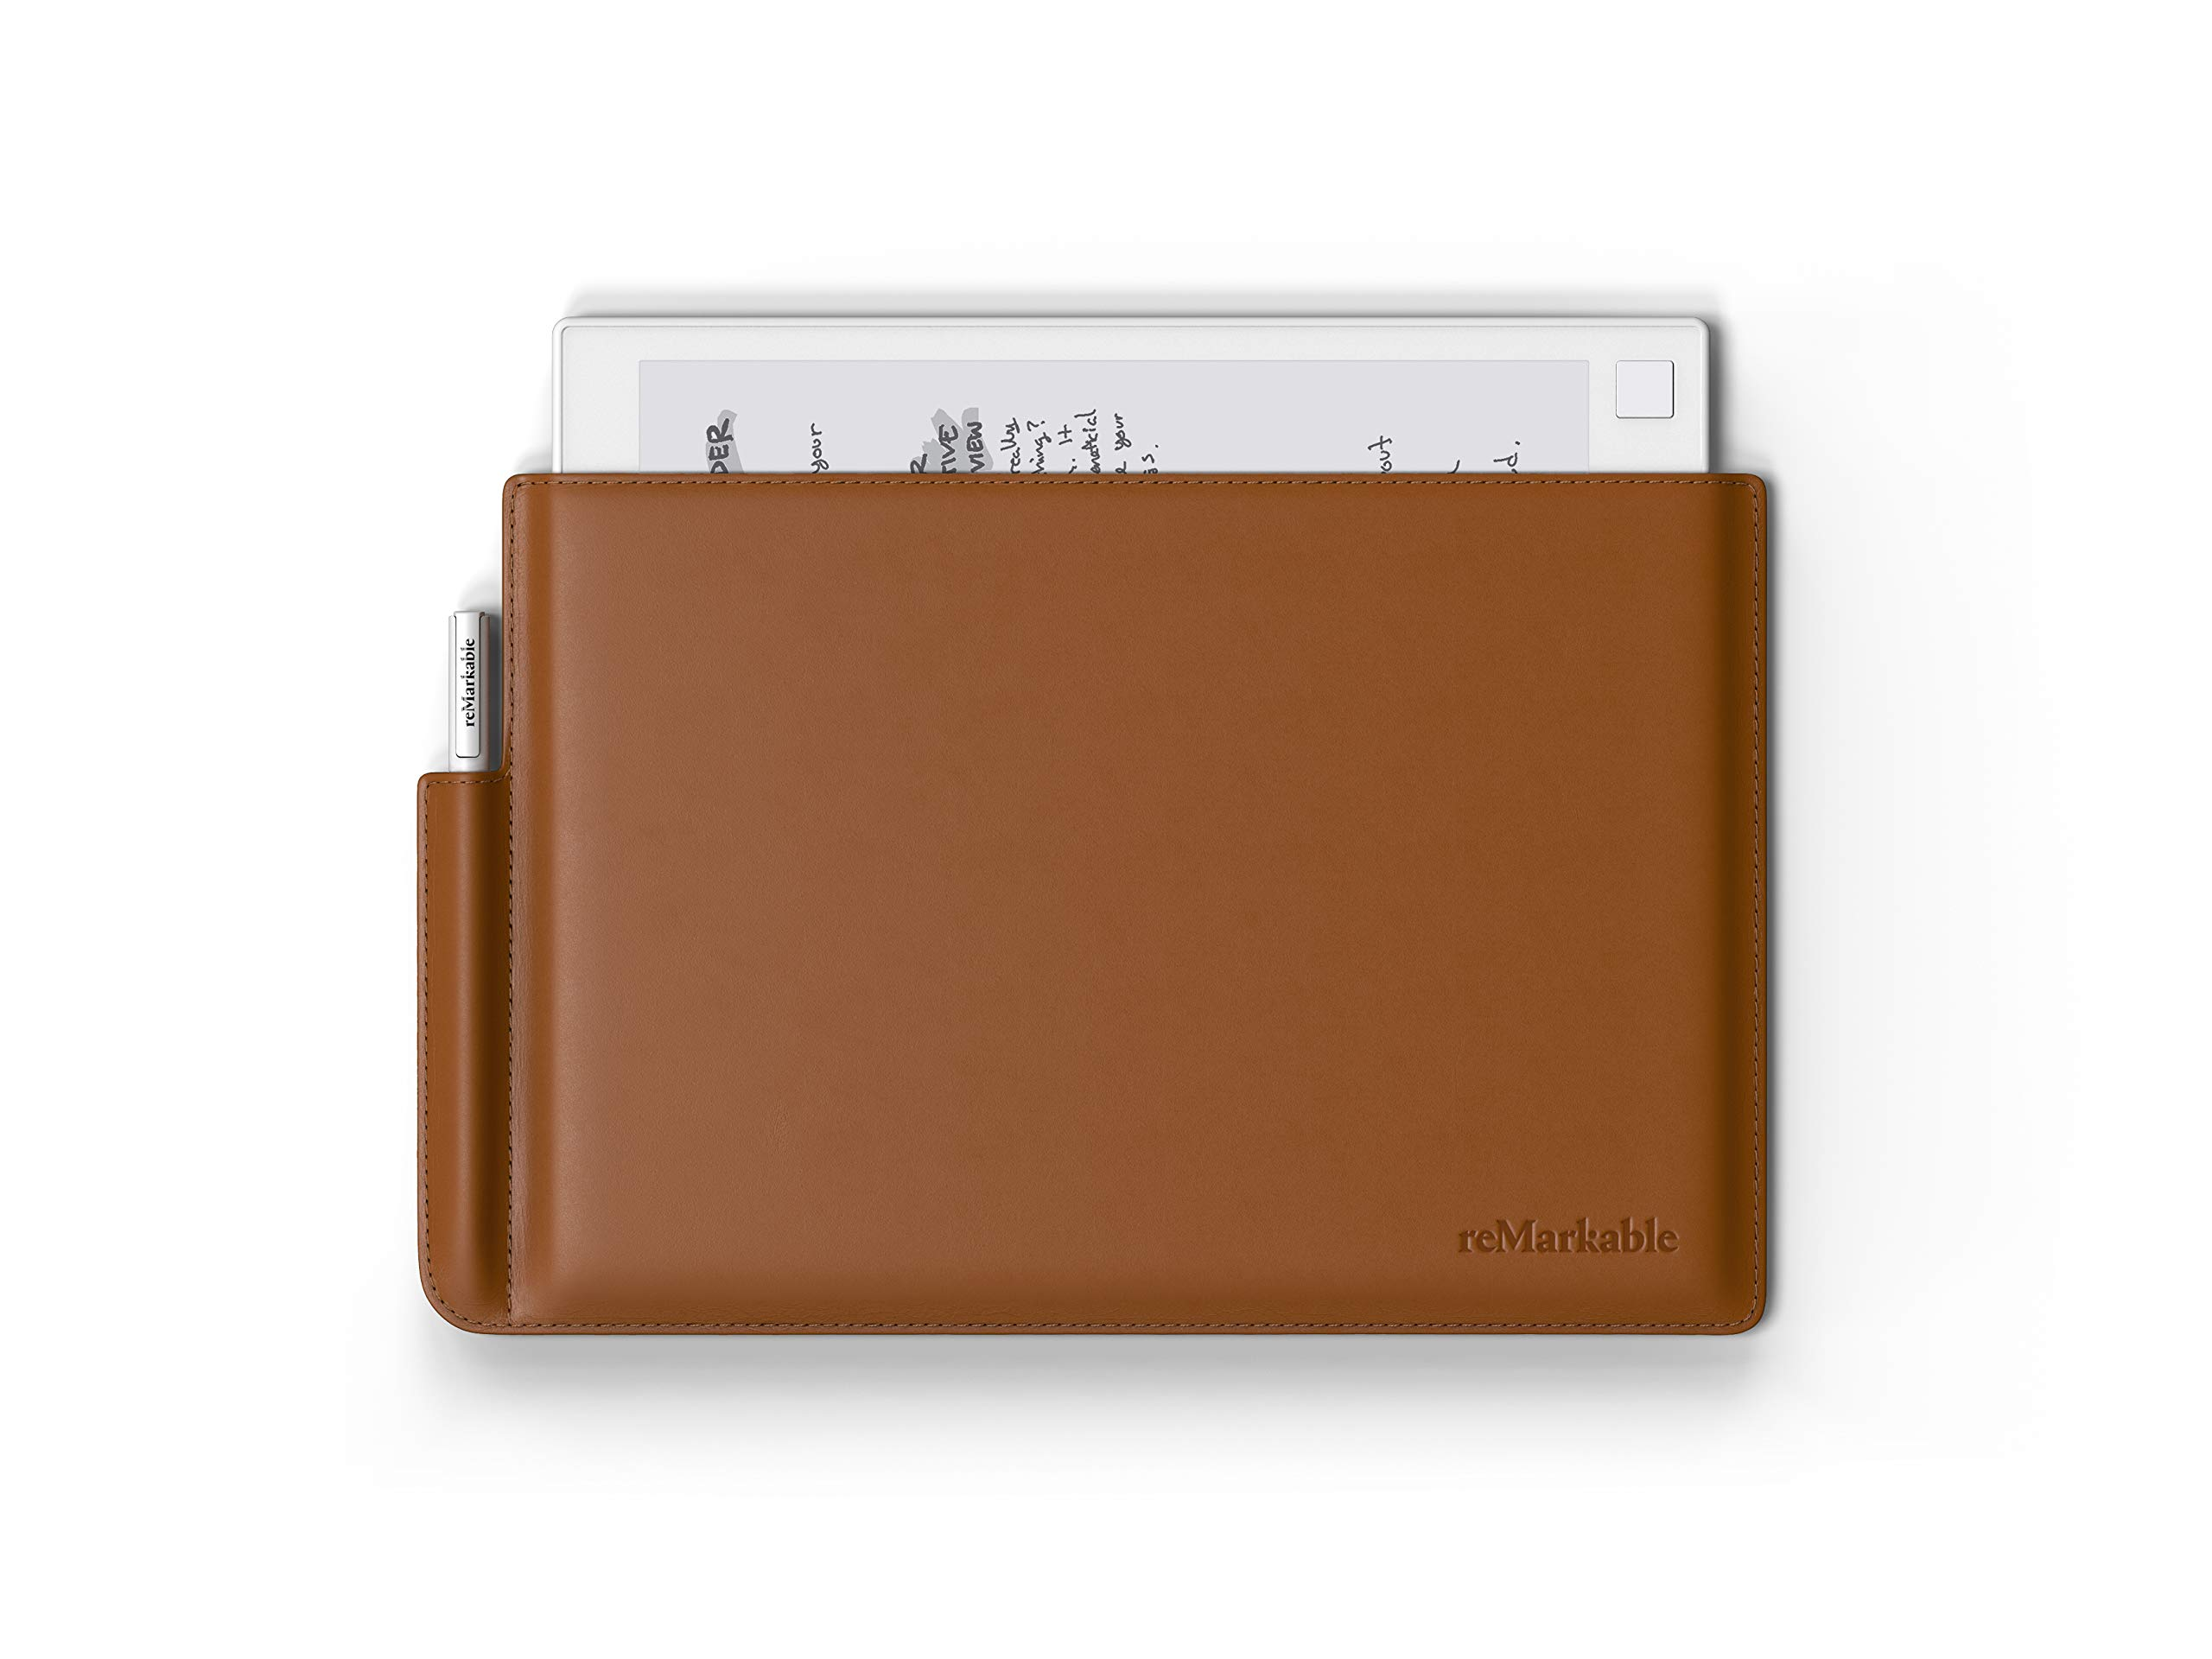 reMarkable Folio: Maple Brown - Premium Leather - The Official Sleeve for The reMarkable Paper Tablet